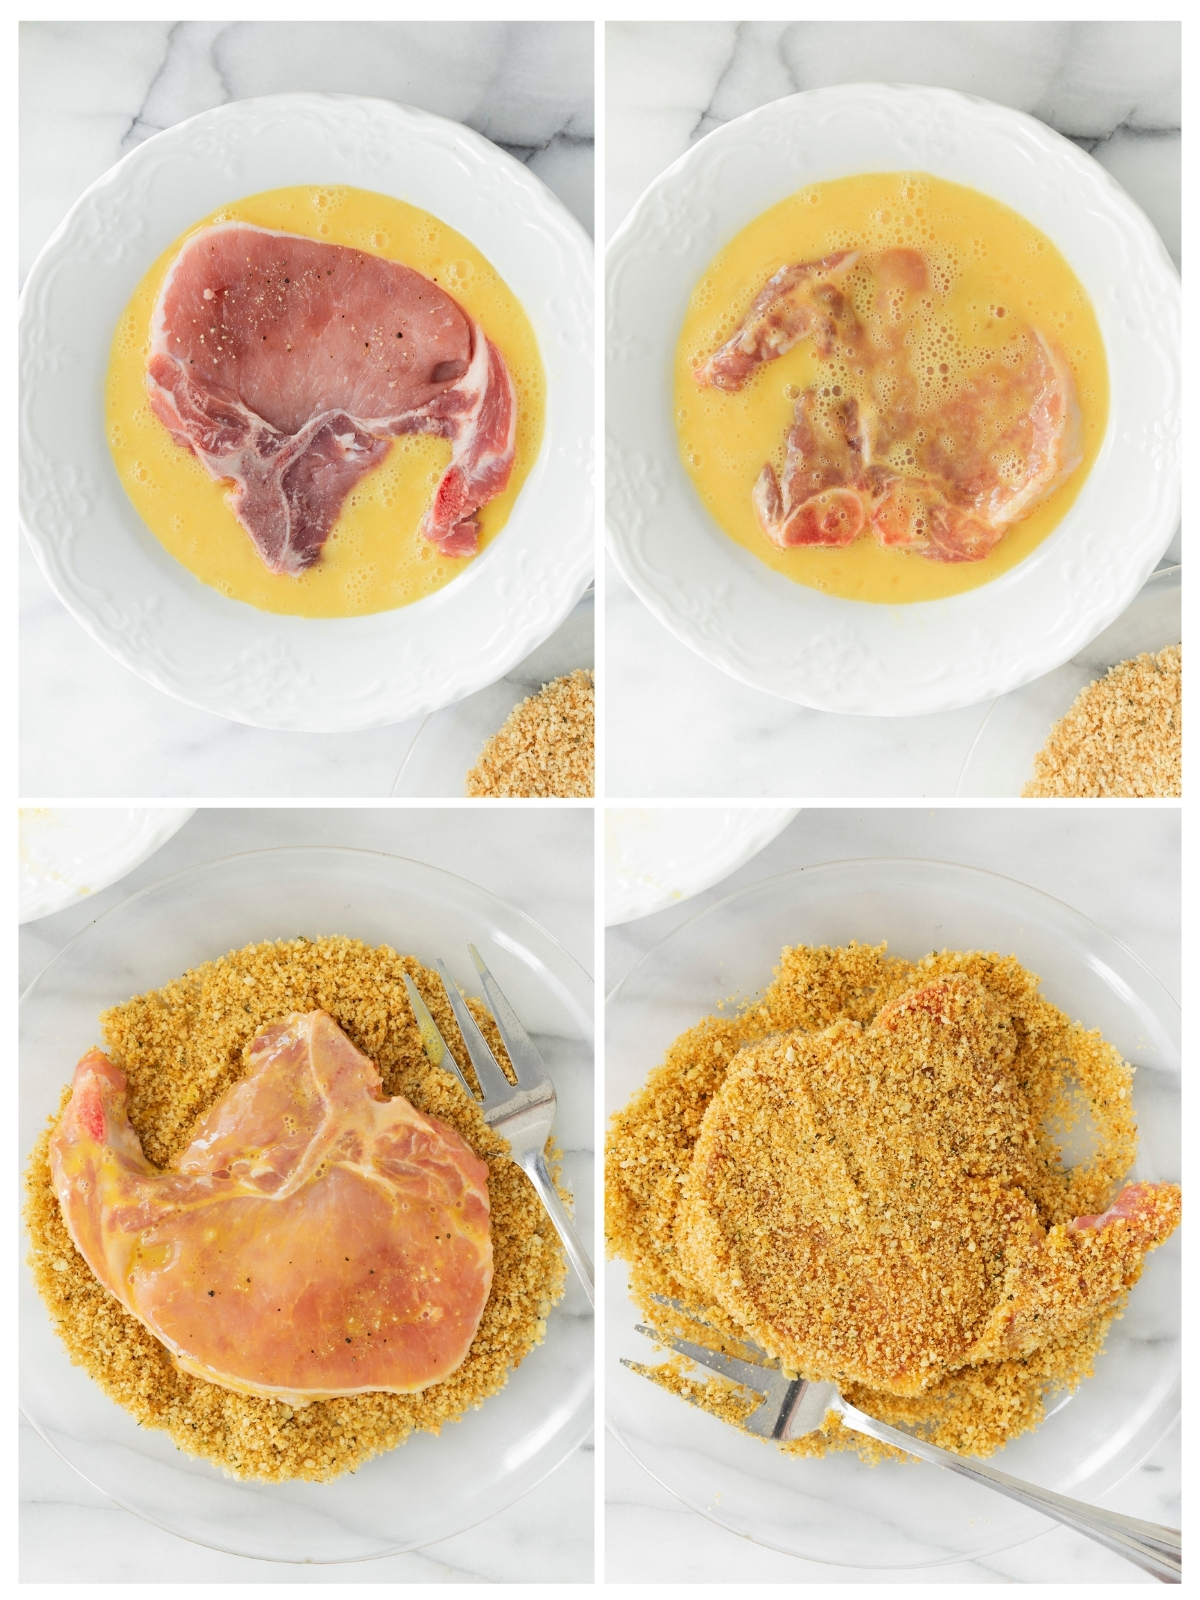 coating pork chops with egg and bread crumbs